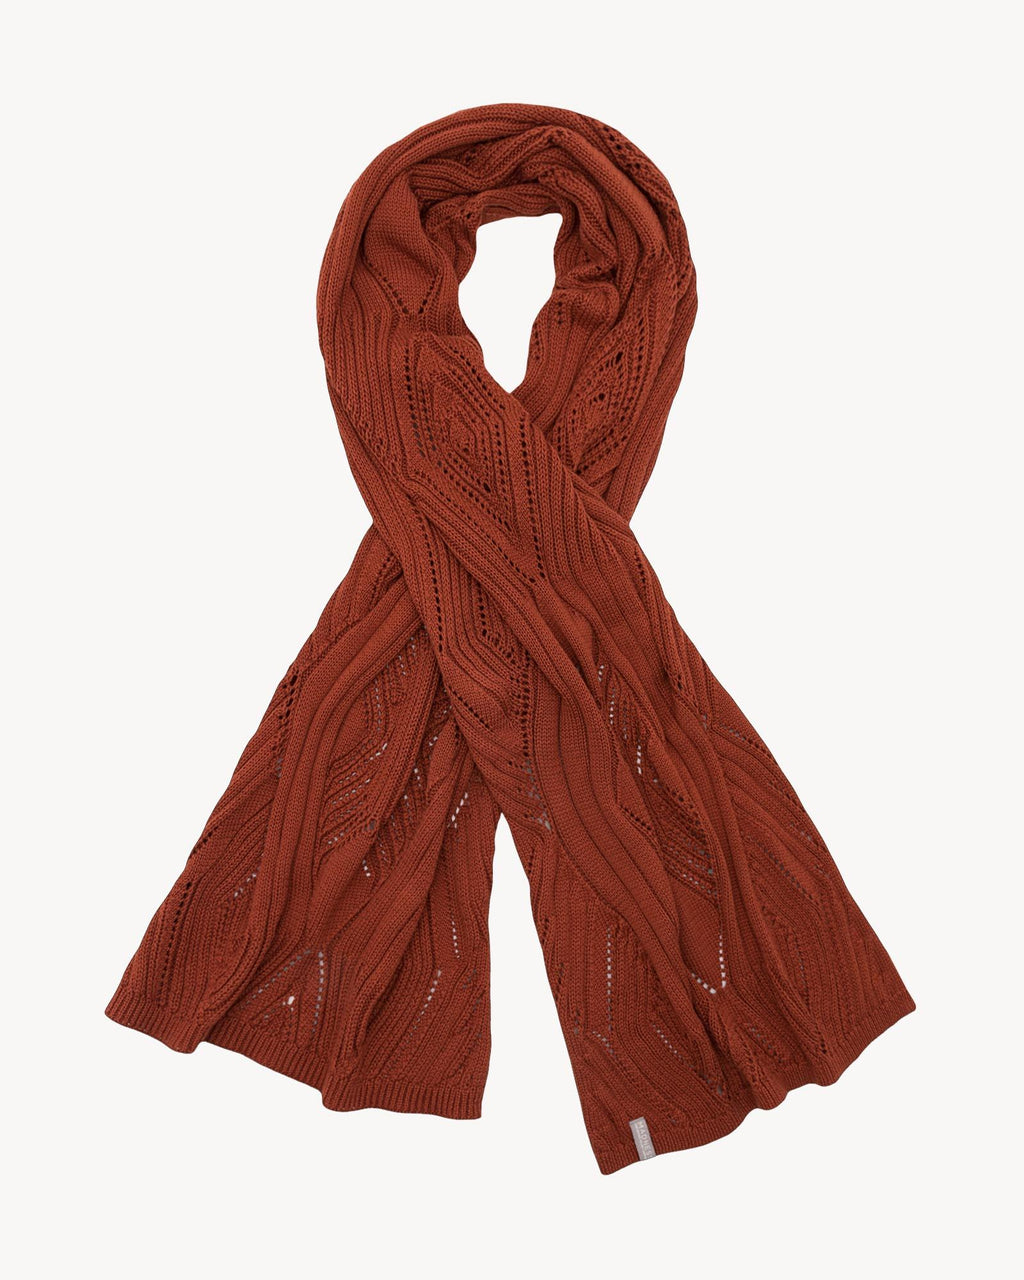 variant_2 | EN Women knitted scarf brown | DE Damen Strickschal braun